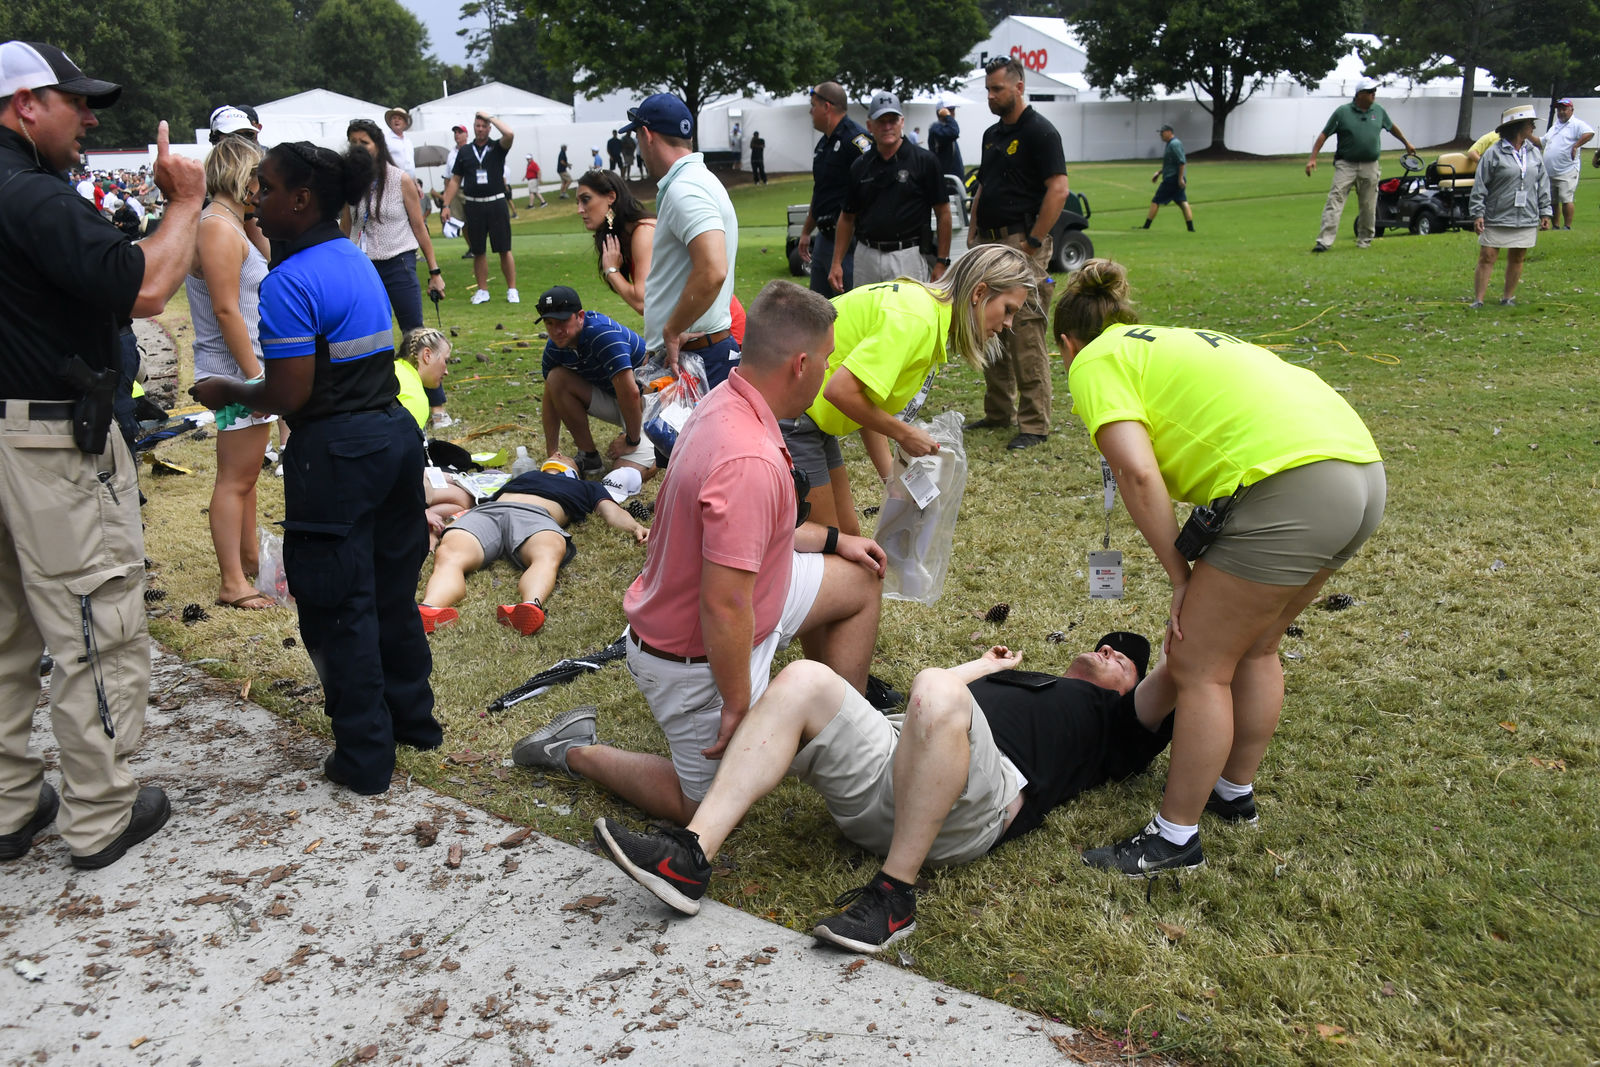 Spectators are tended to after a lightning strike on the course left several injured during a weather delay in the third round of the Tour Championship golf tournament Saturday, Aug. 24, 2019, in Atlanta. (AP Photo/John Amis)